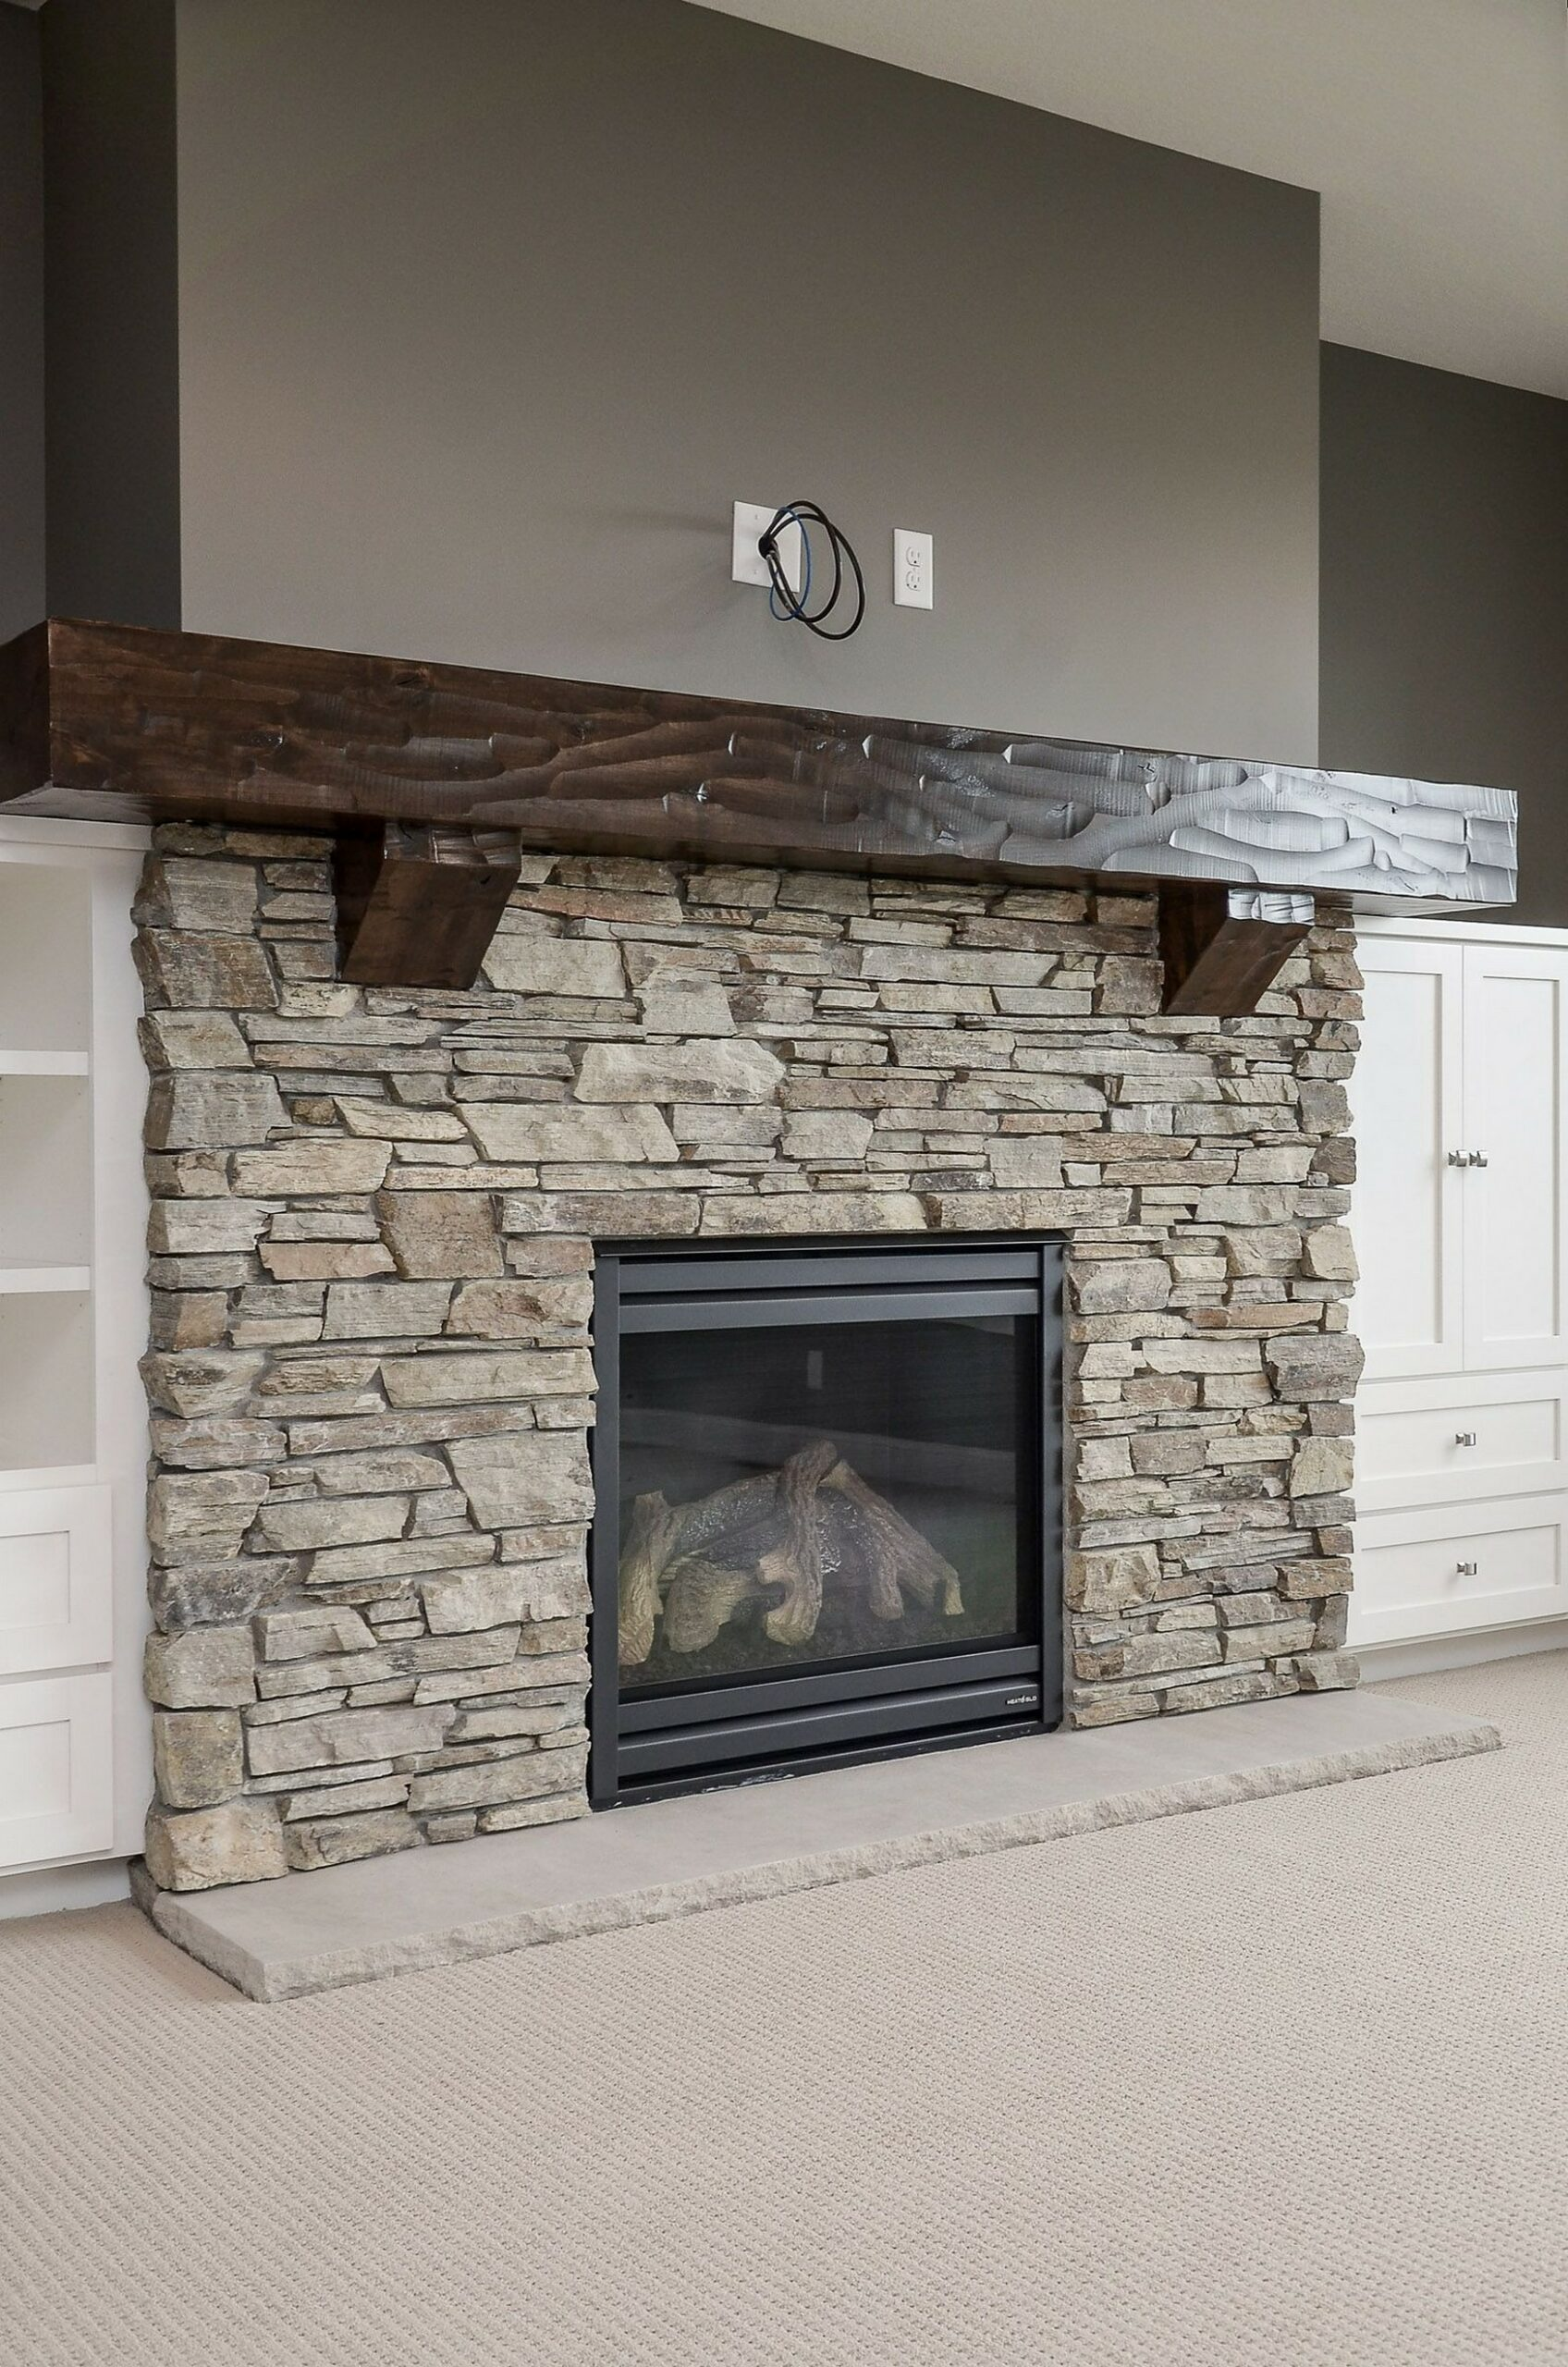 76 Stone Fireplaces The Hearth Is The Heart of The Home 32